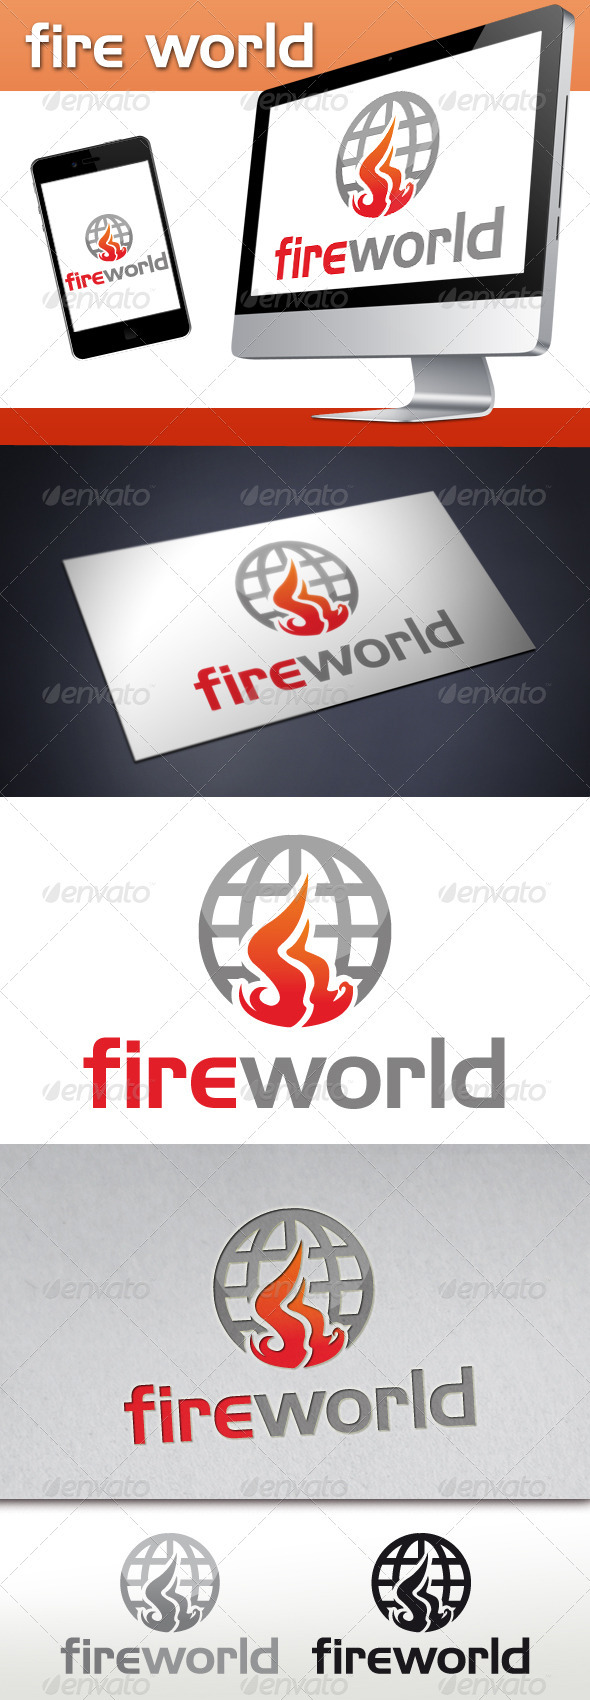 Fire World Media Logo